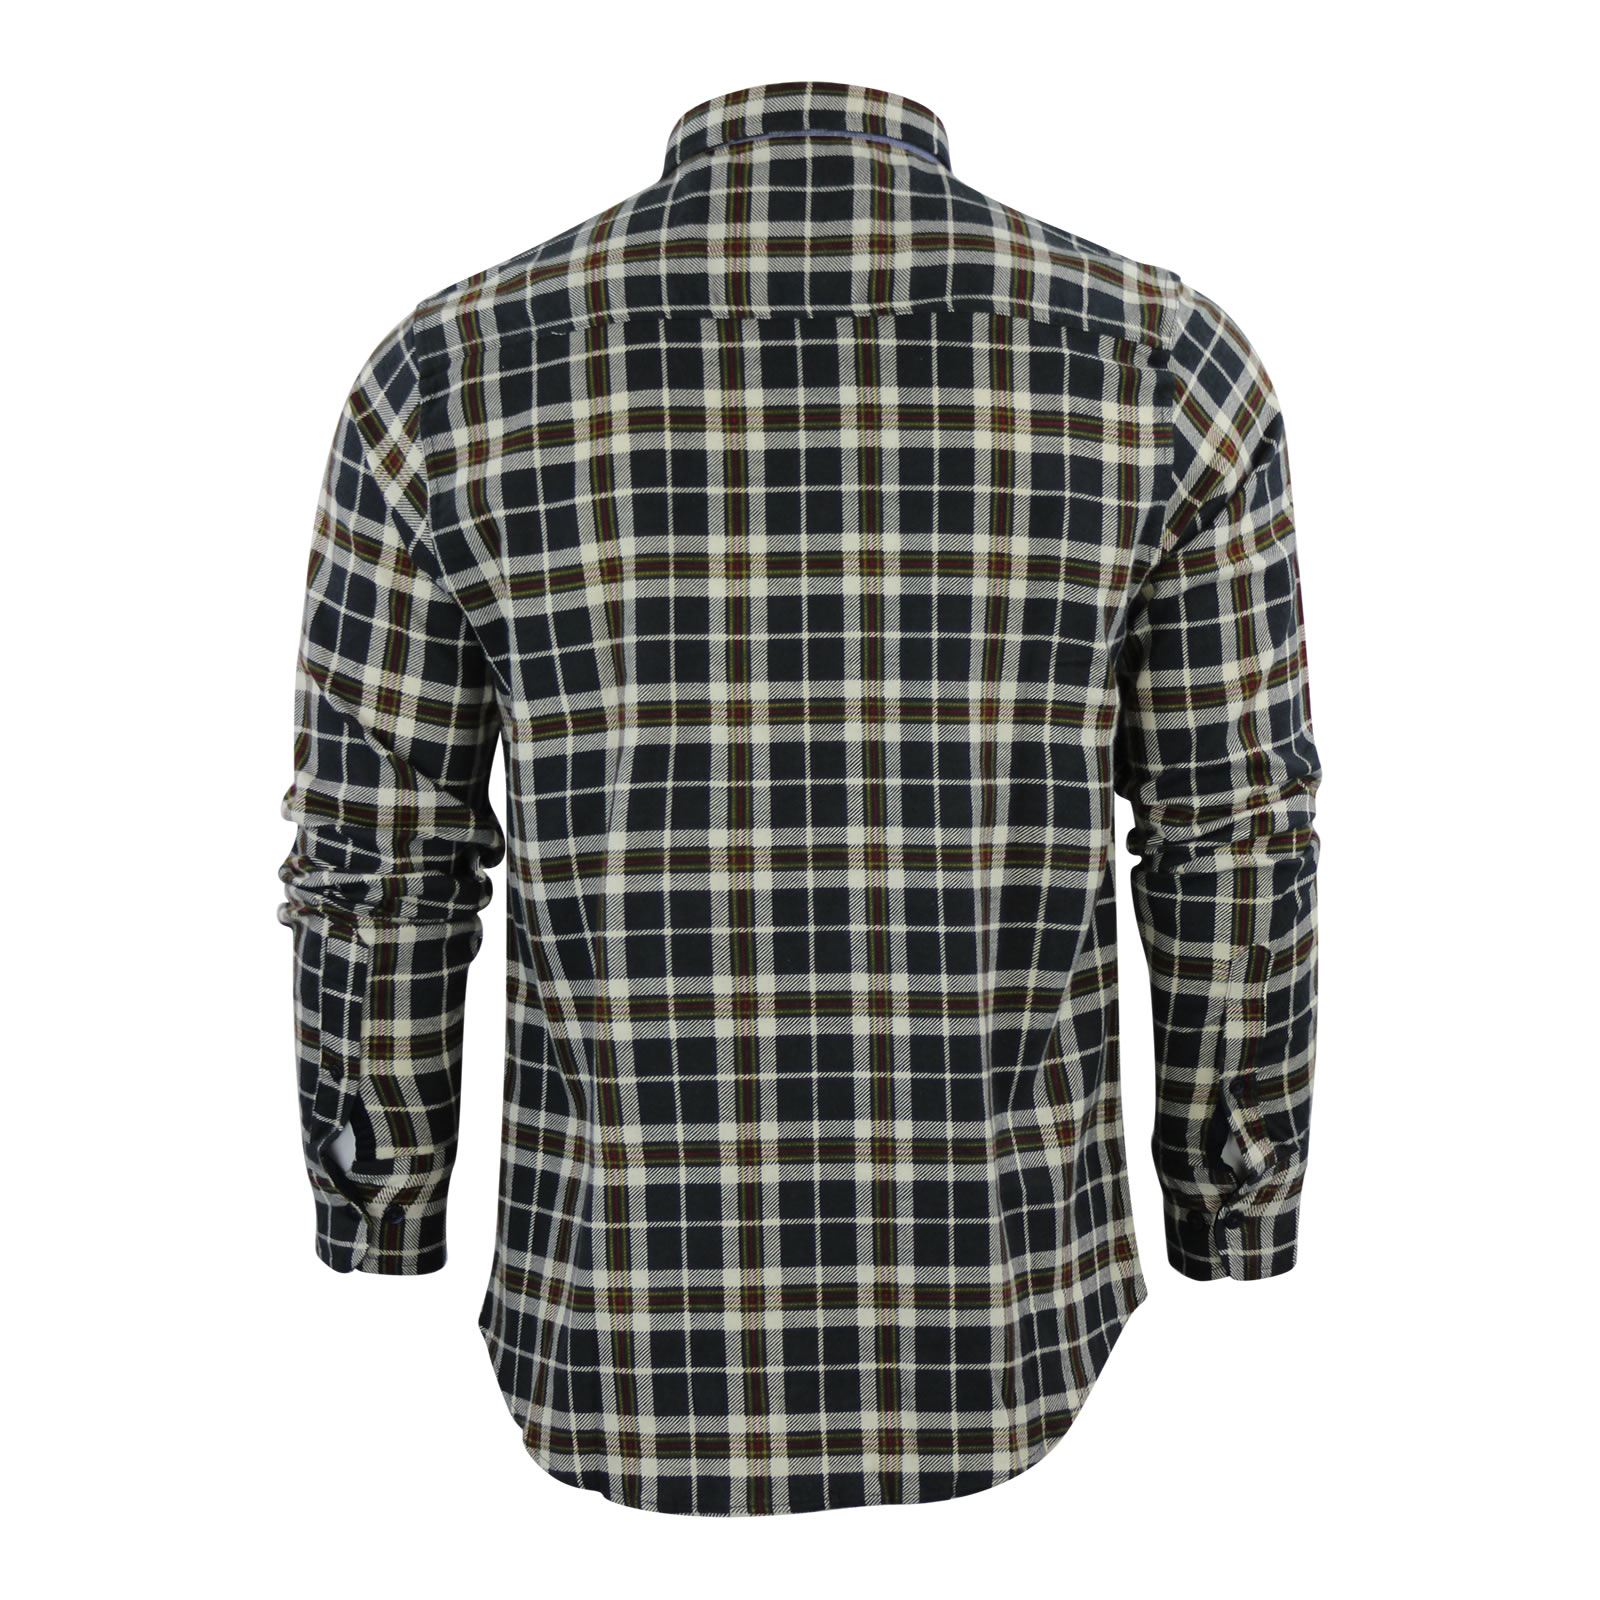 Mens-Check-Shirt-Brave-Soul-Flannel-Brushed-Cotton-Long-Sleeve-Casual-Top thumbnail 45